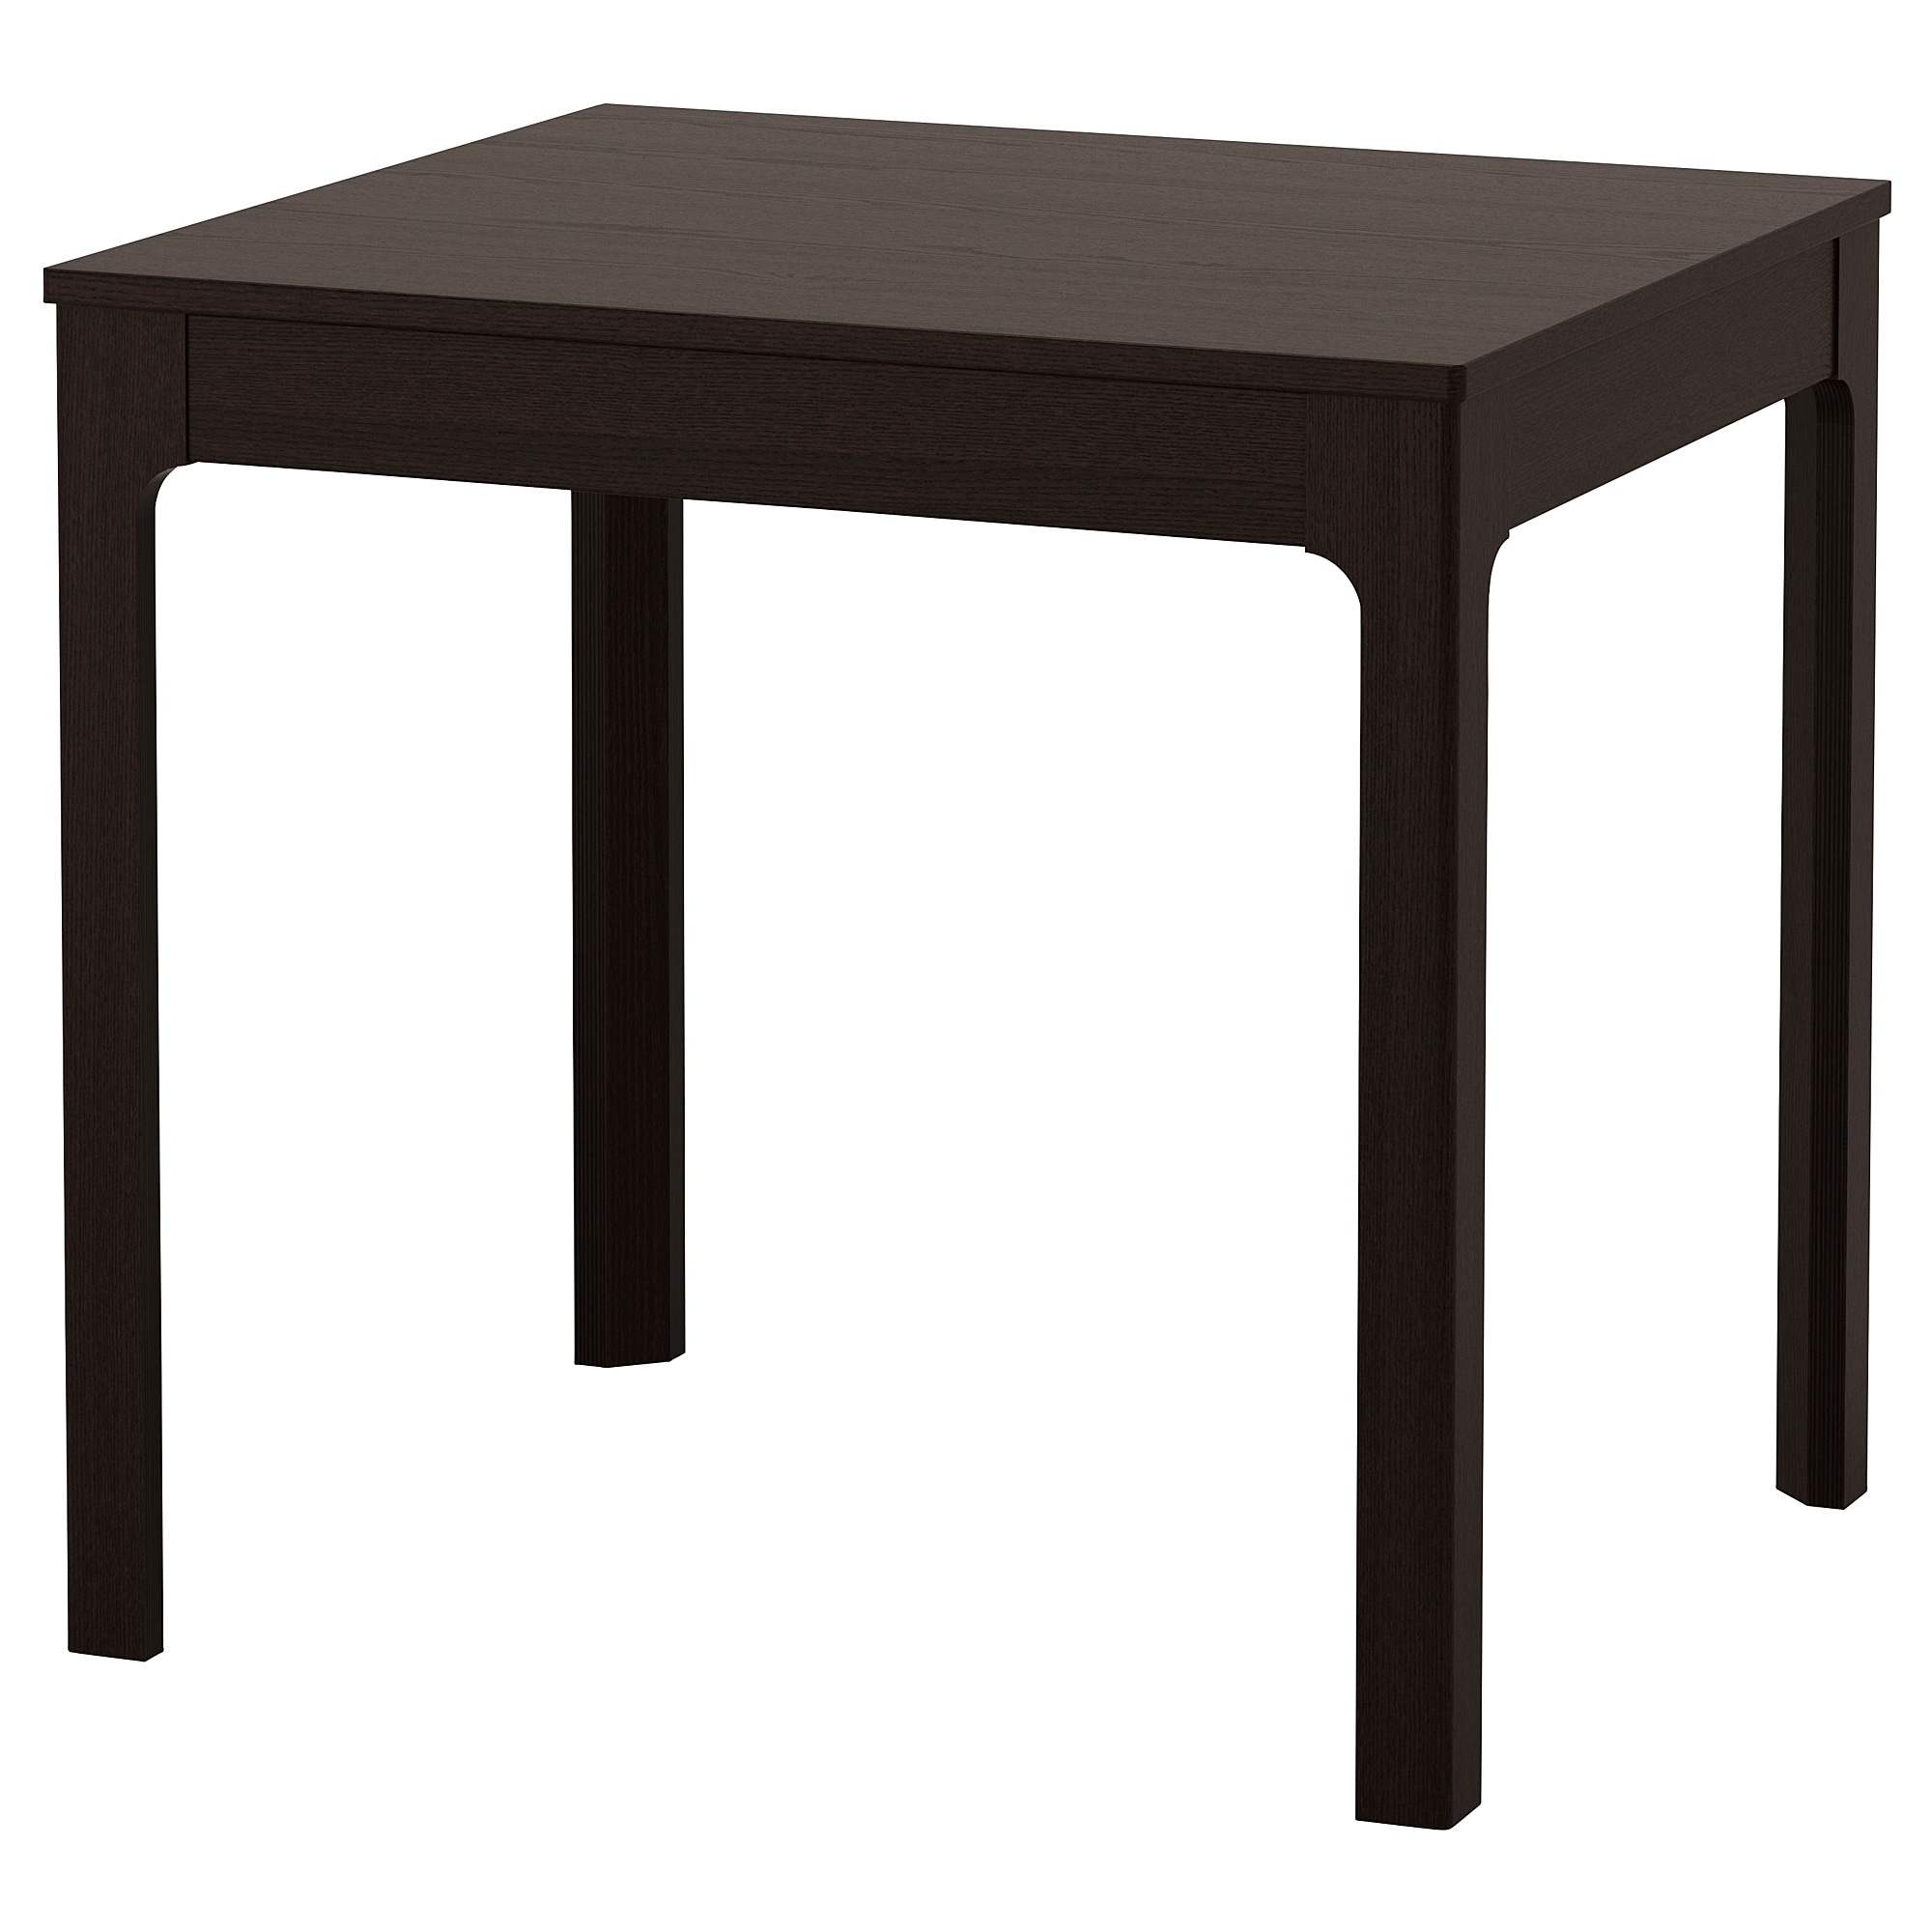 EKEDALEN extendable table, dark brown Min. length: 31 1/2